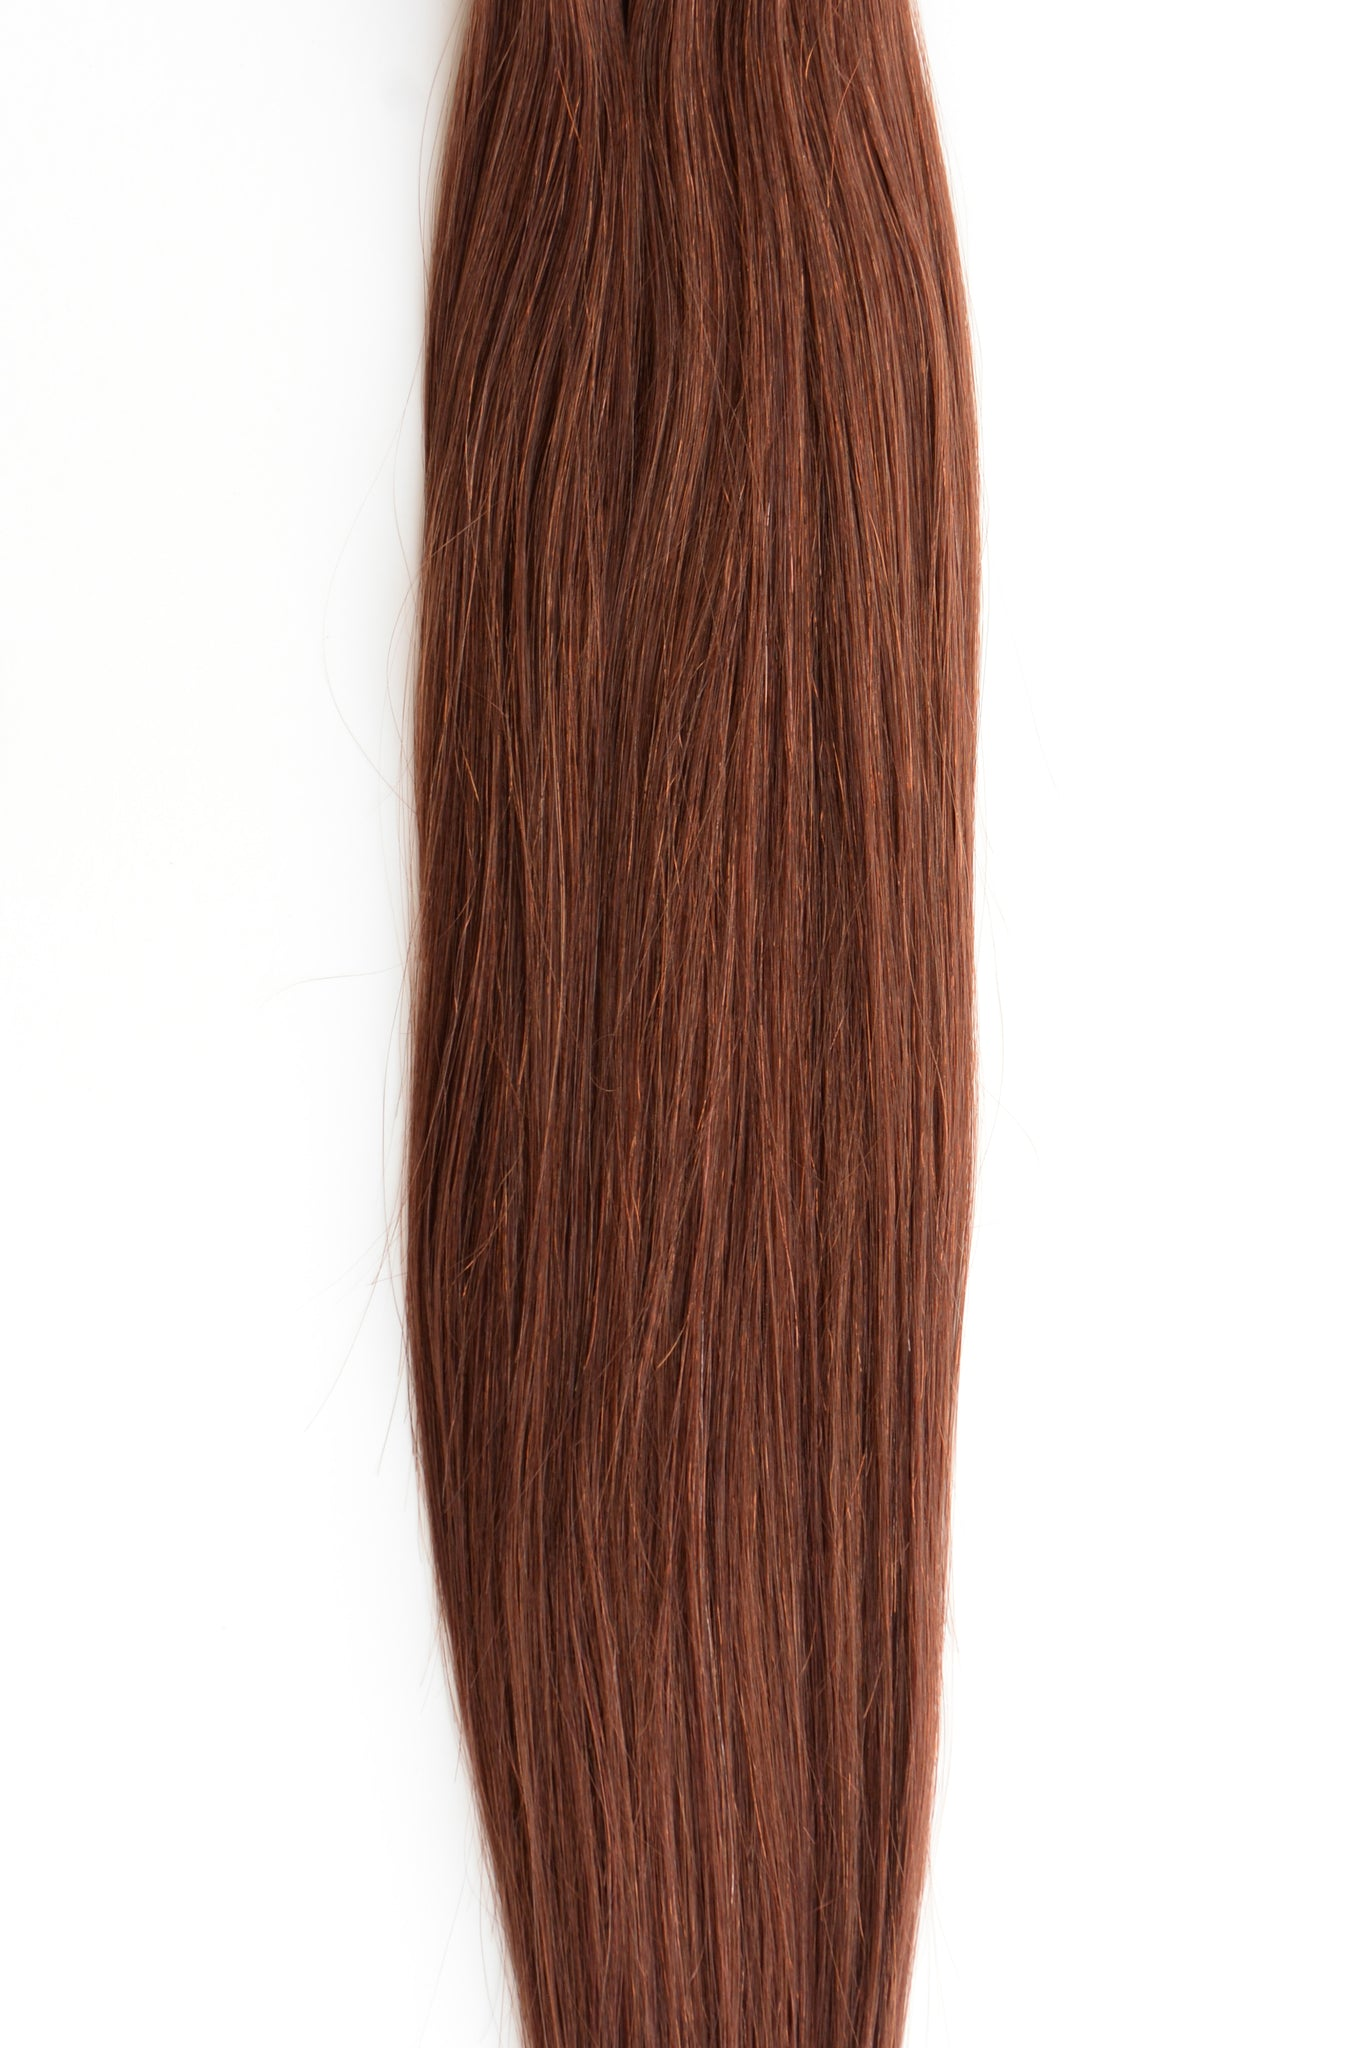 Malibu Hair Extension from Pryme Hair